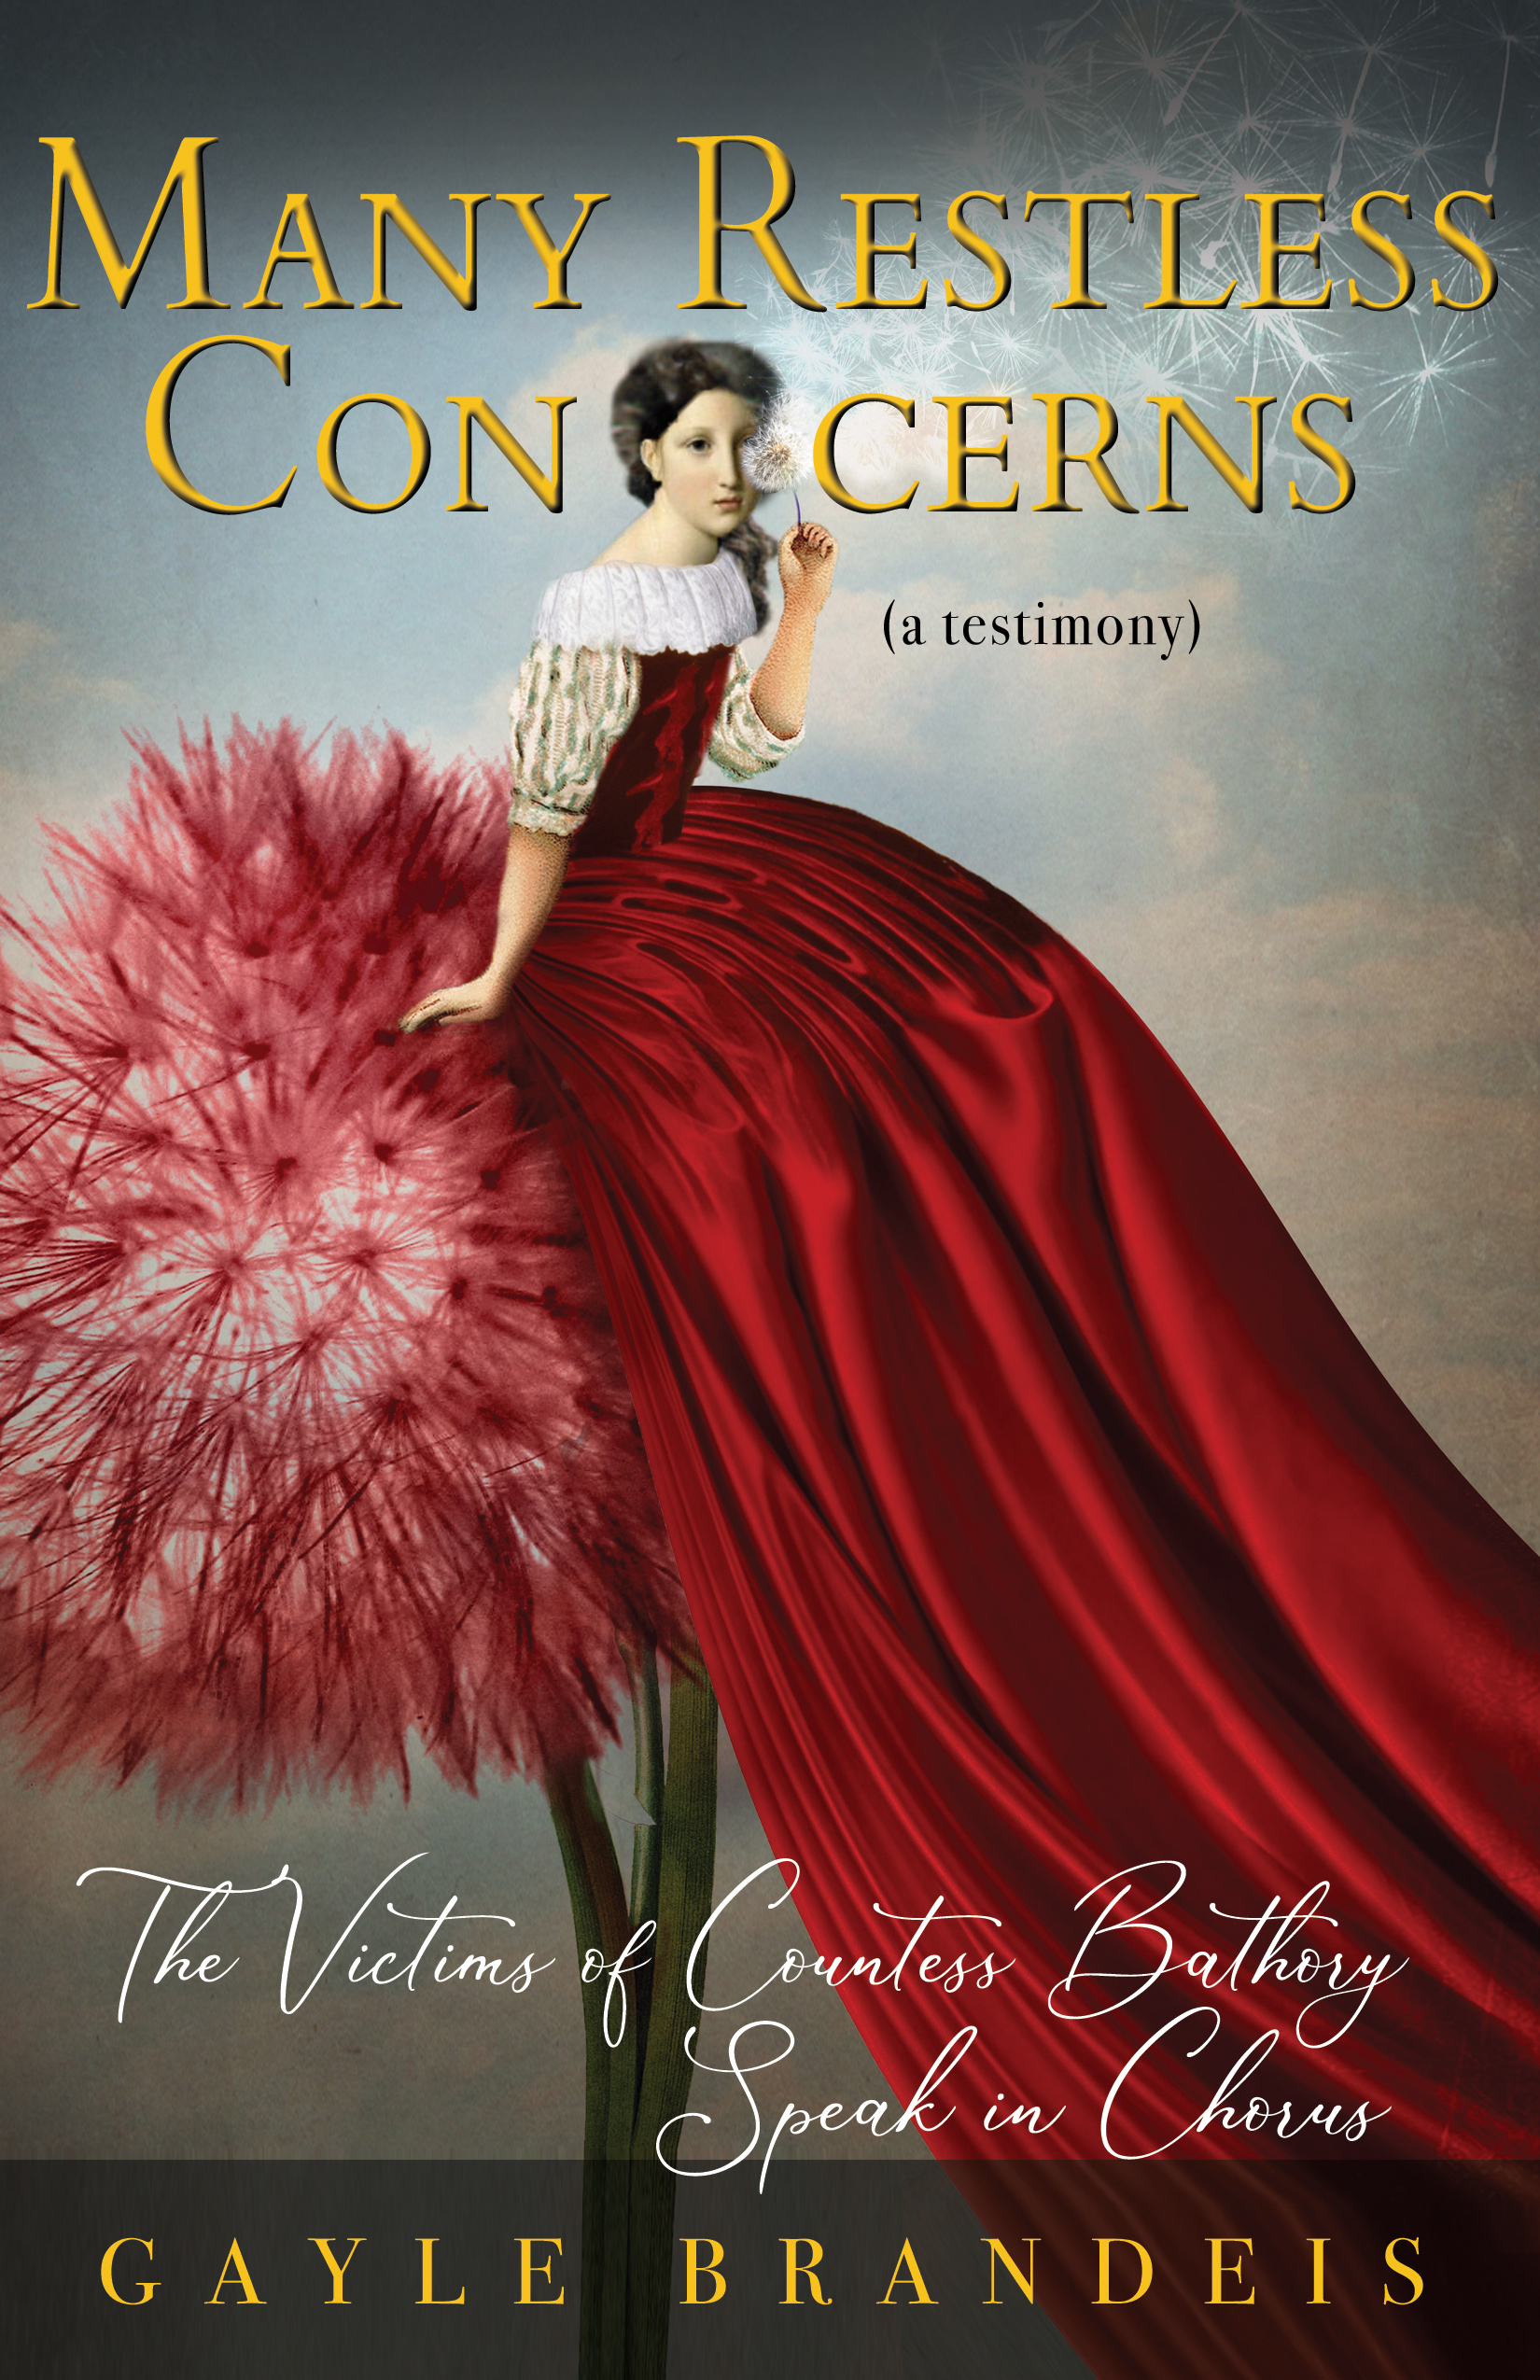 many restless concerns book cover